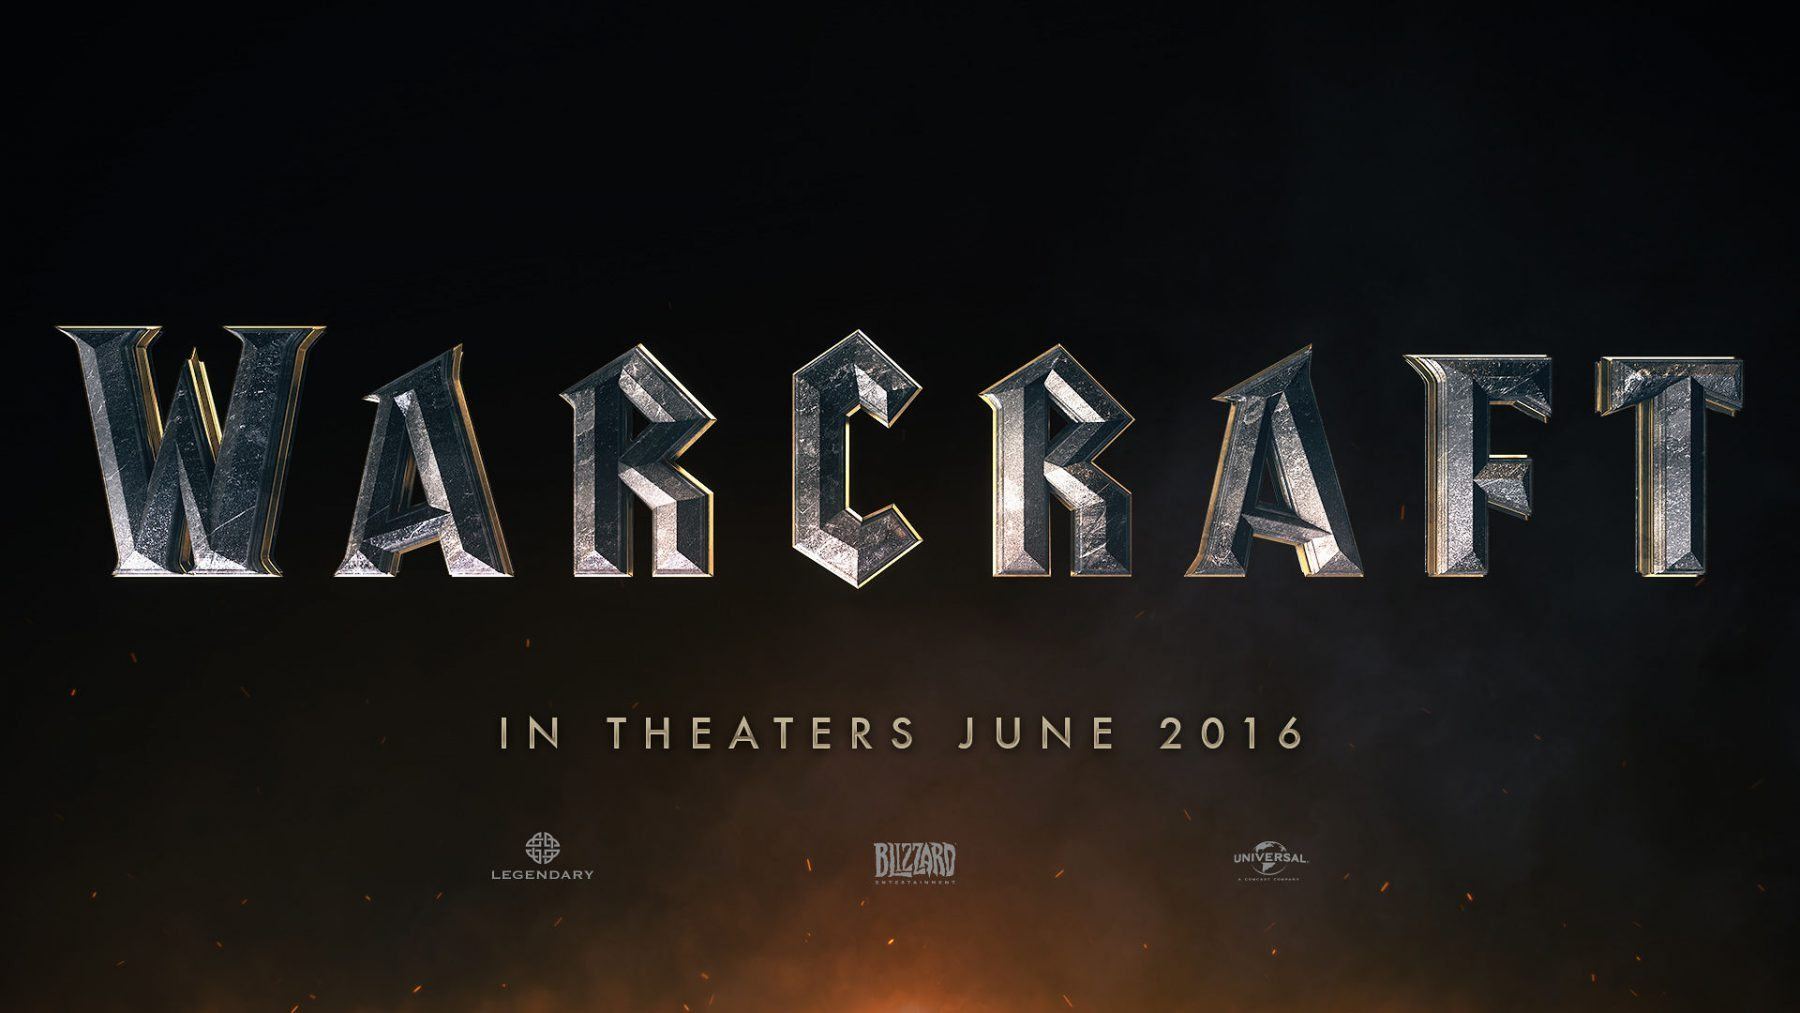 the-warcraft-trailer-teaser-is-here-but-can-the-film-live-up-to-the-hype-695744